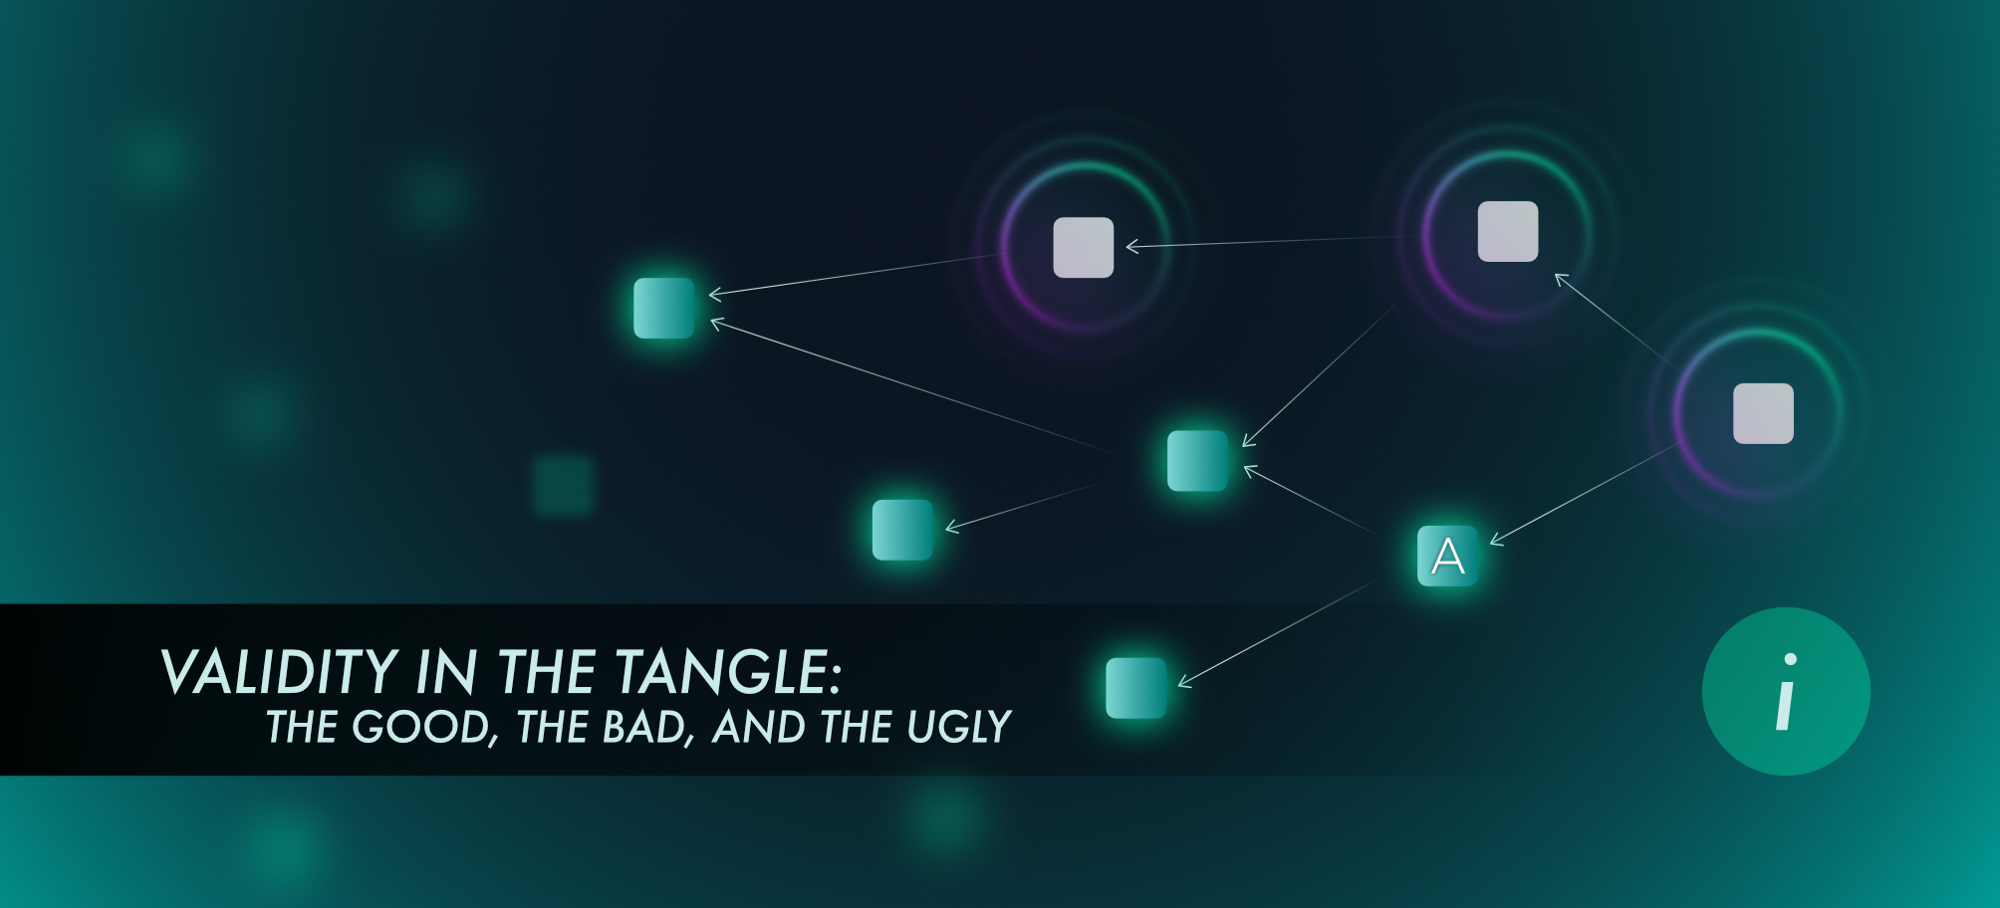 Validity in the Tangle: The good, the bad, and the ugly